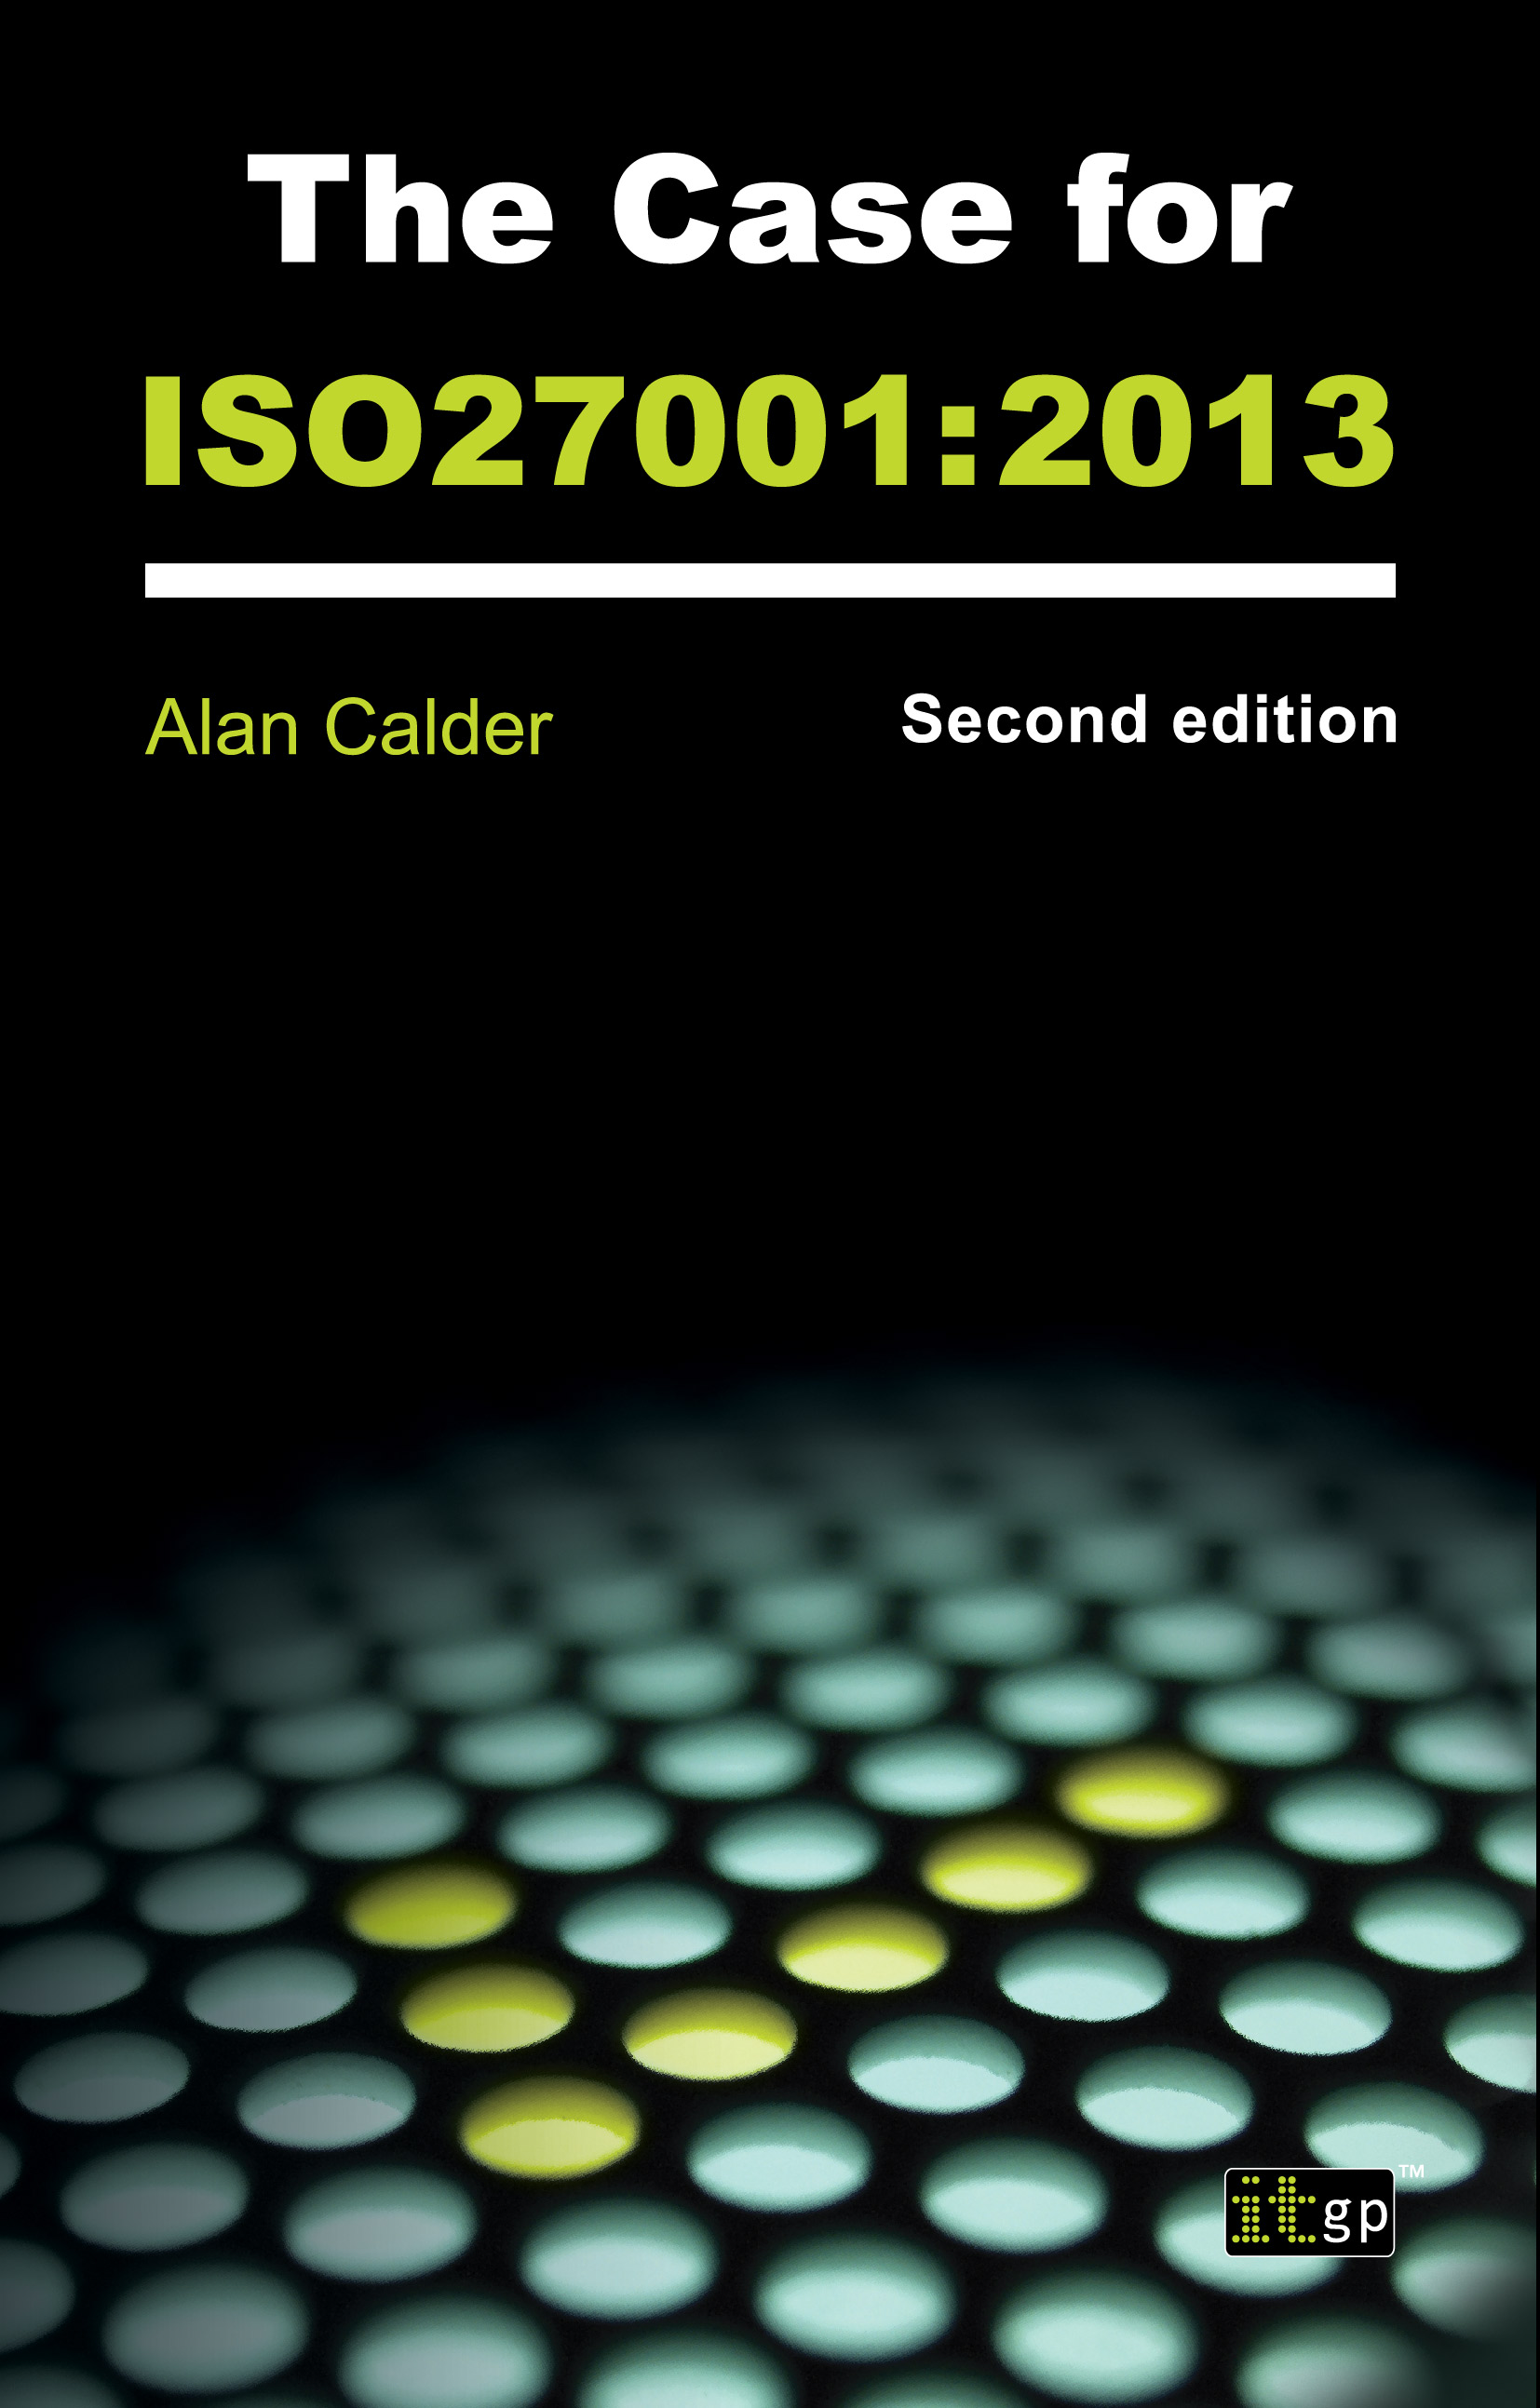 The Case for ISO27001:2013 by Alan Calder | Read online